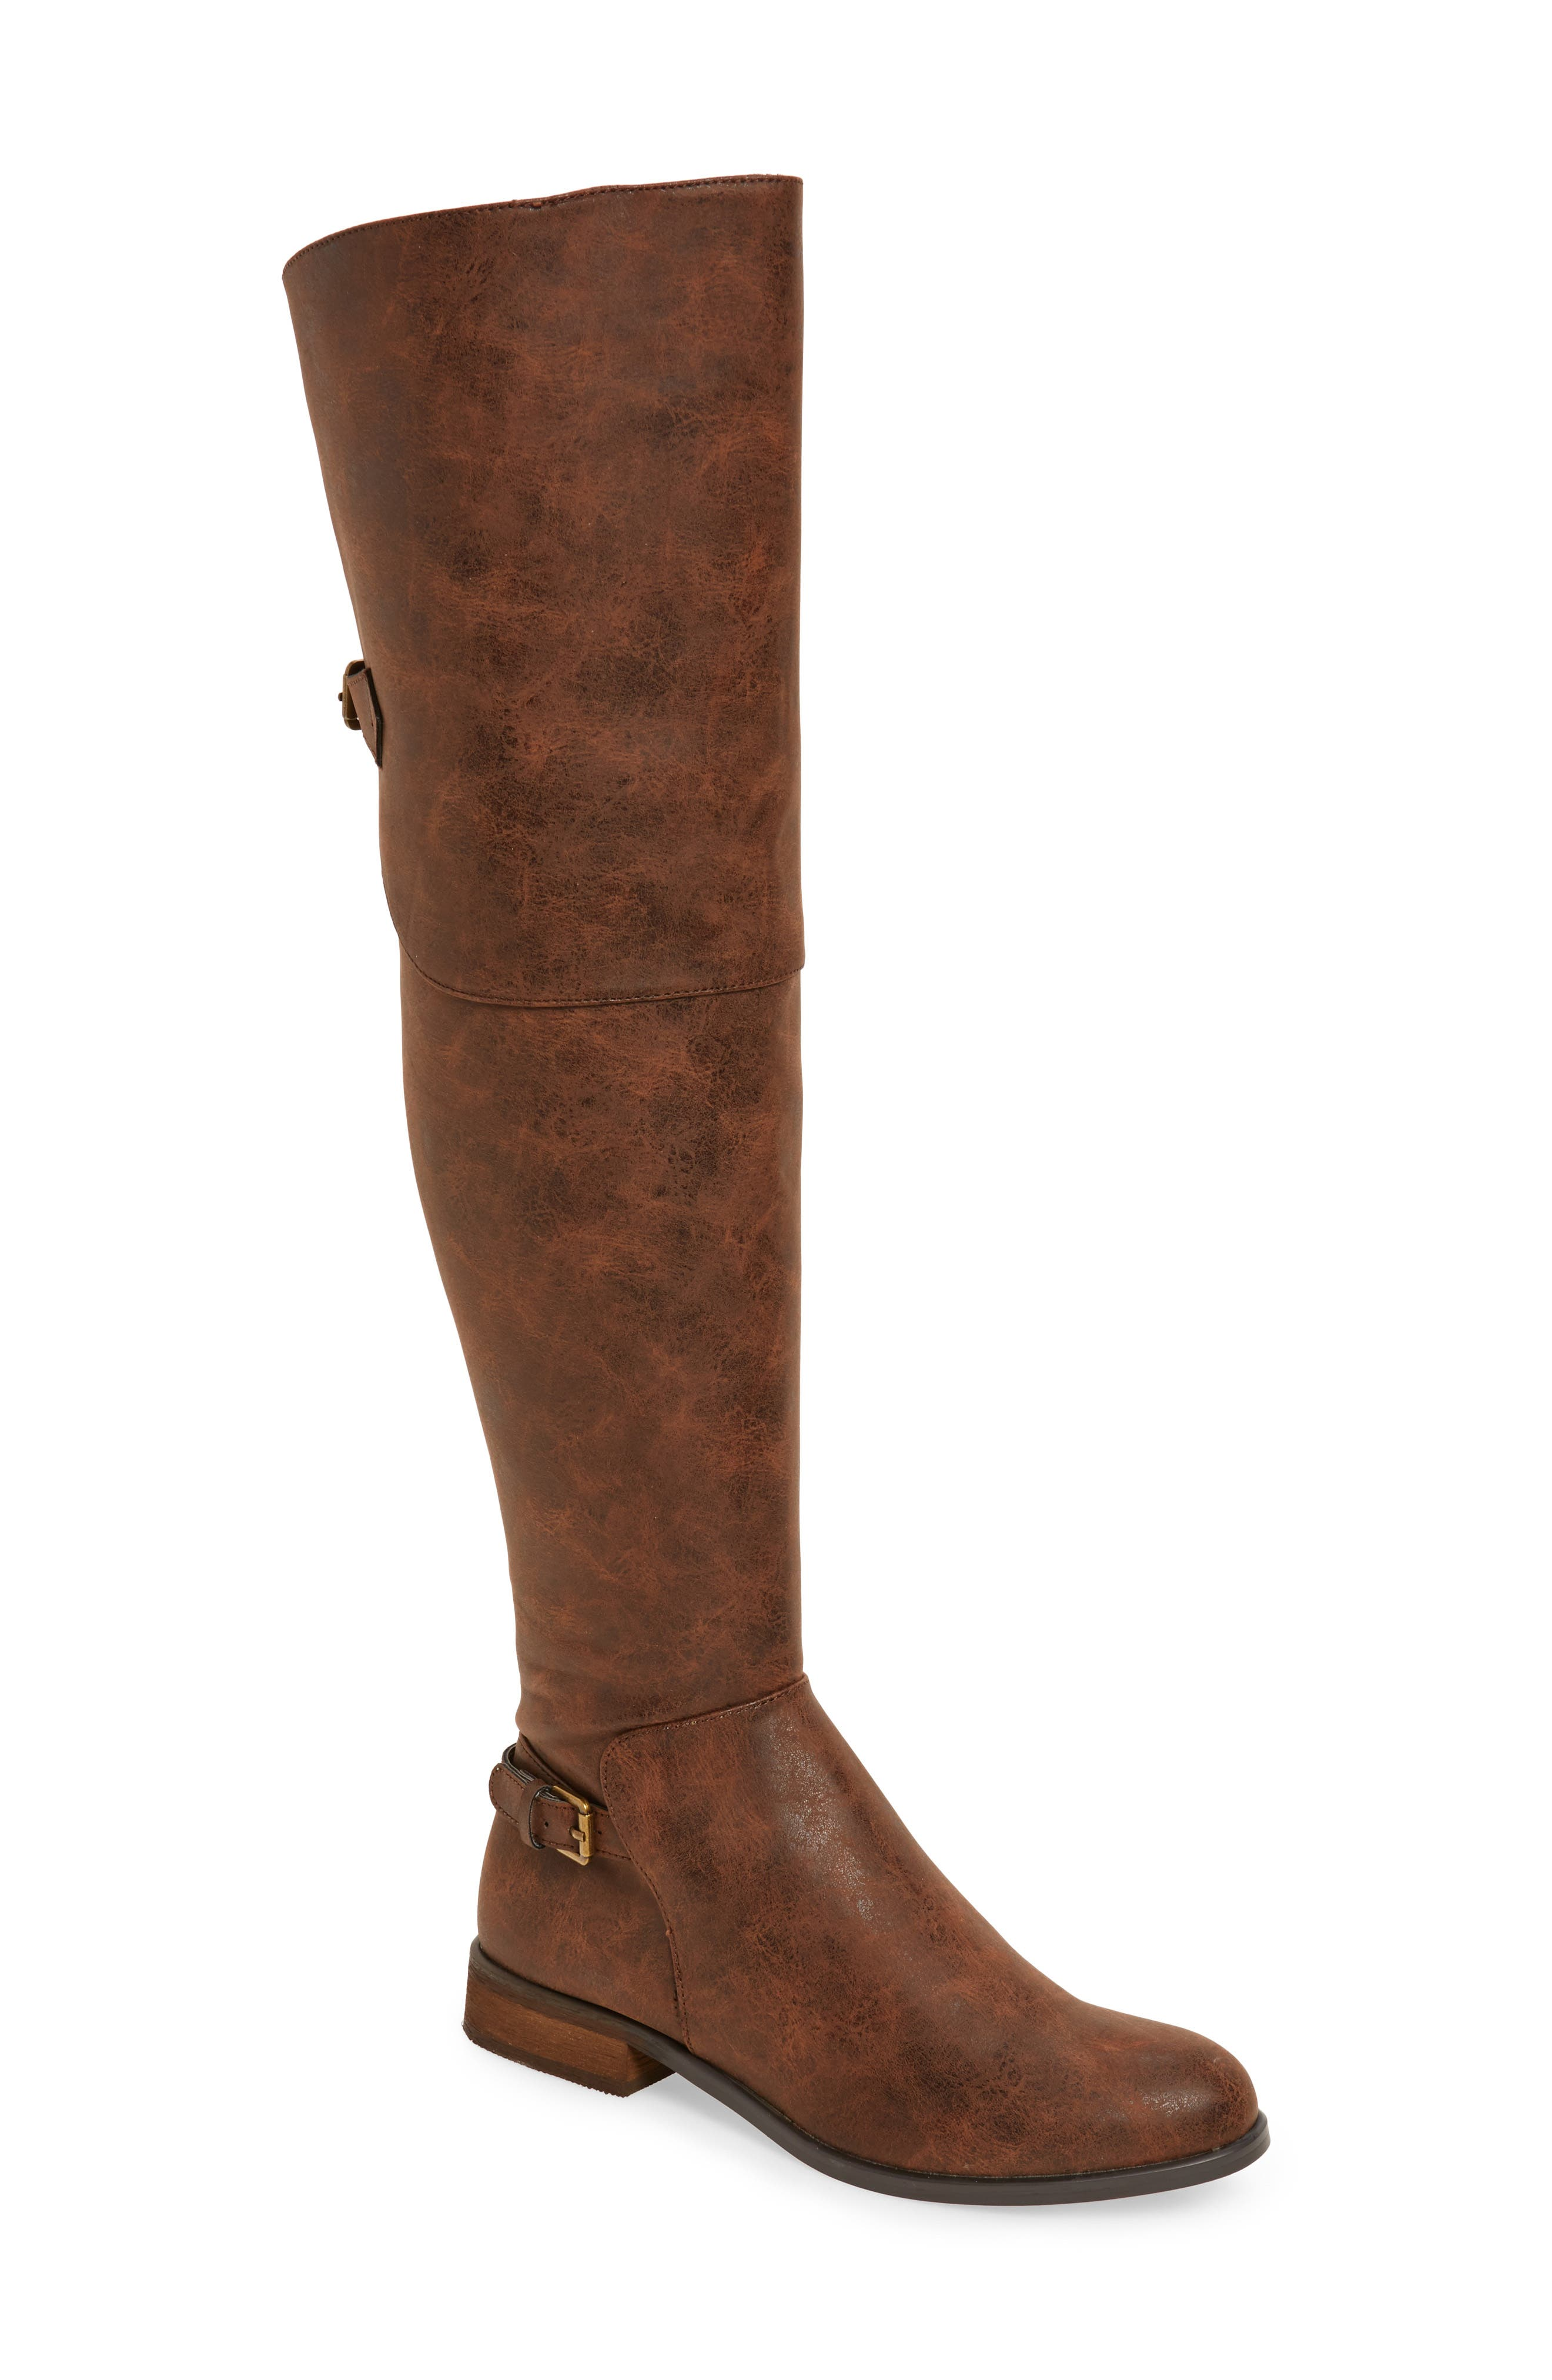 Main Image - Very Volatile Otto Over the Knee Boot (Women)